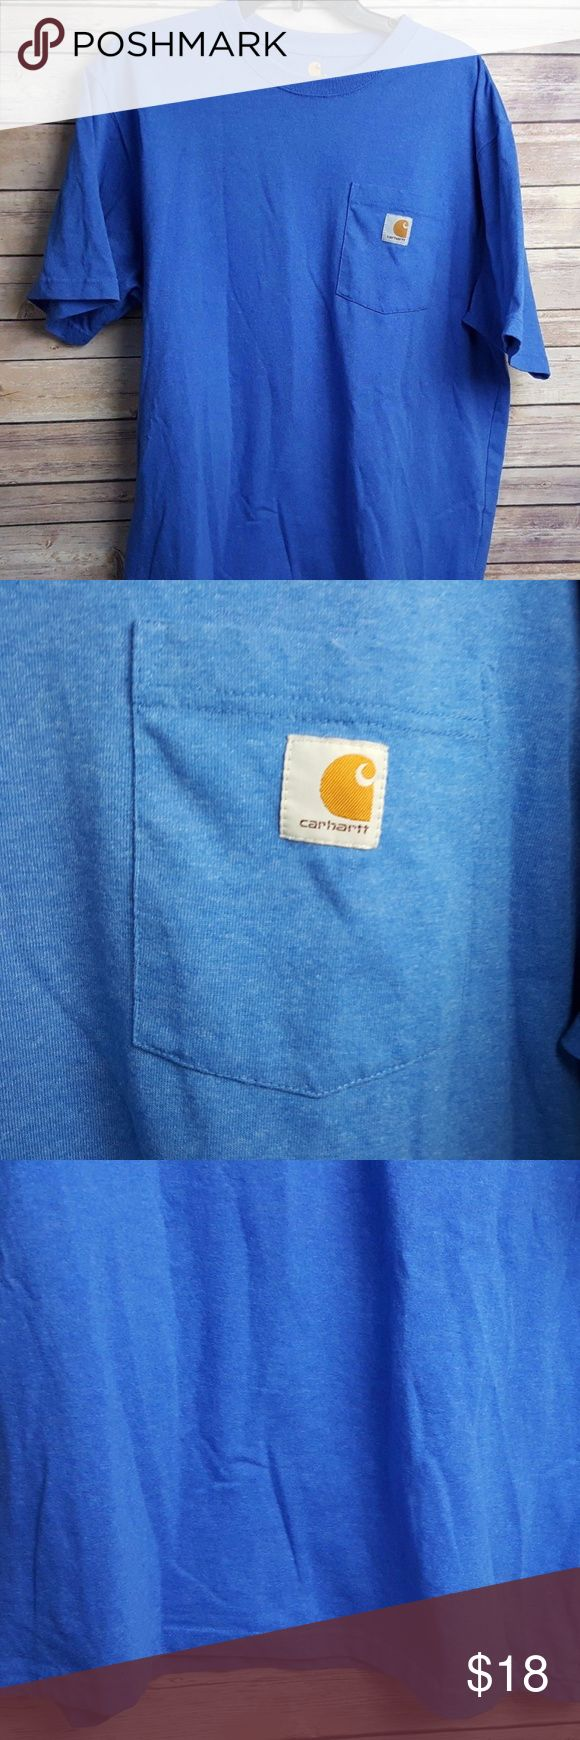 "Carhartt Work Pocket T-Shirt Blue Marl Large Carhartt Work Pocket T-Shirt Blue Marl Large L Original Fit Short Sleeve  Pit to pit: 23.5"" Shoulder to hem: 28""  Small hole on the back of the collar  For a more detailed description of the item please see the photos. Carhartt Shirts Tees - Short Sleeve"